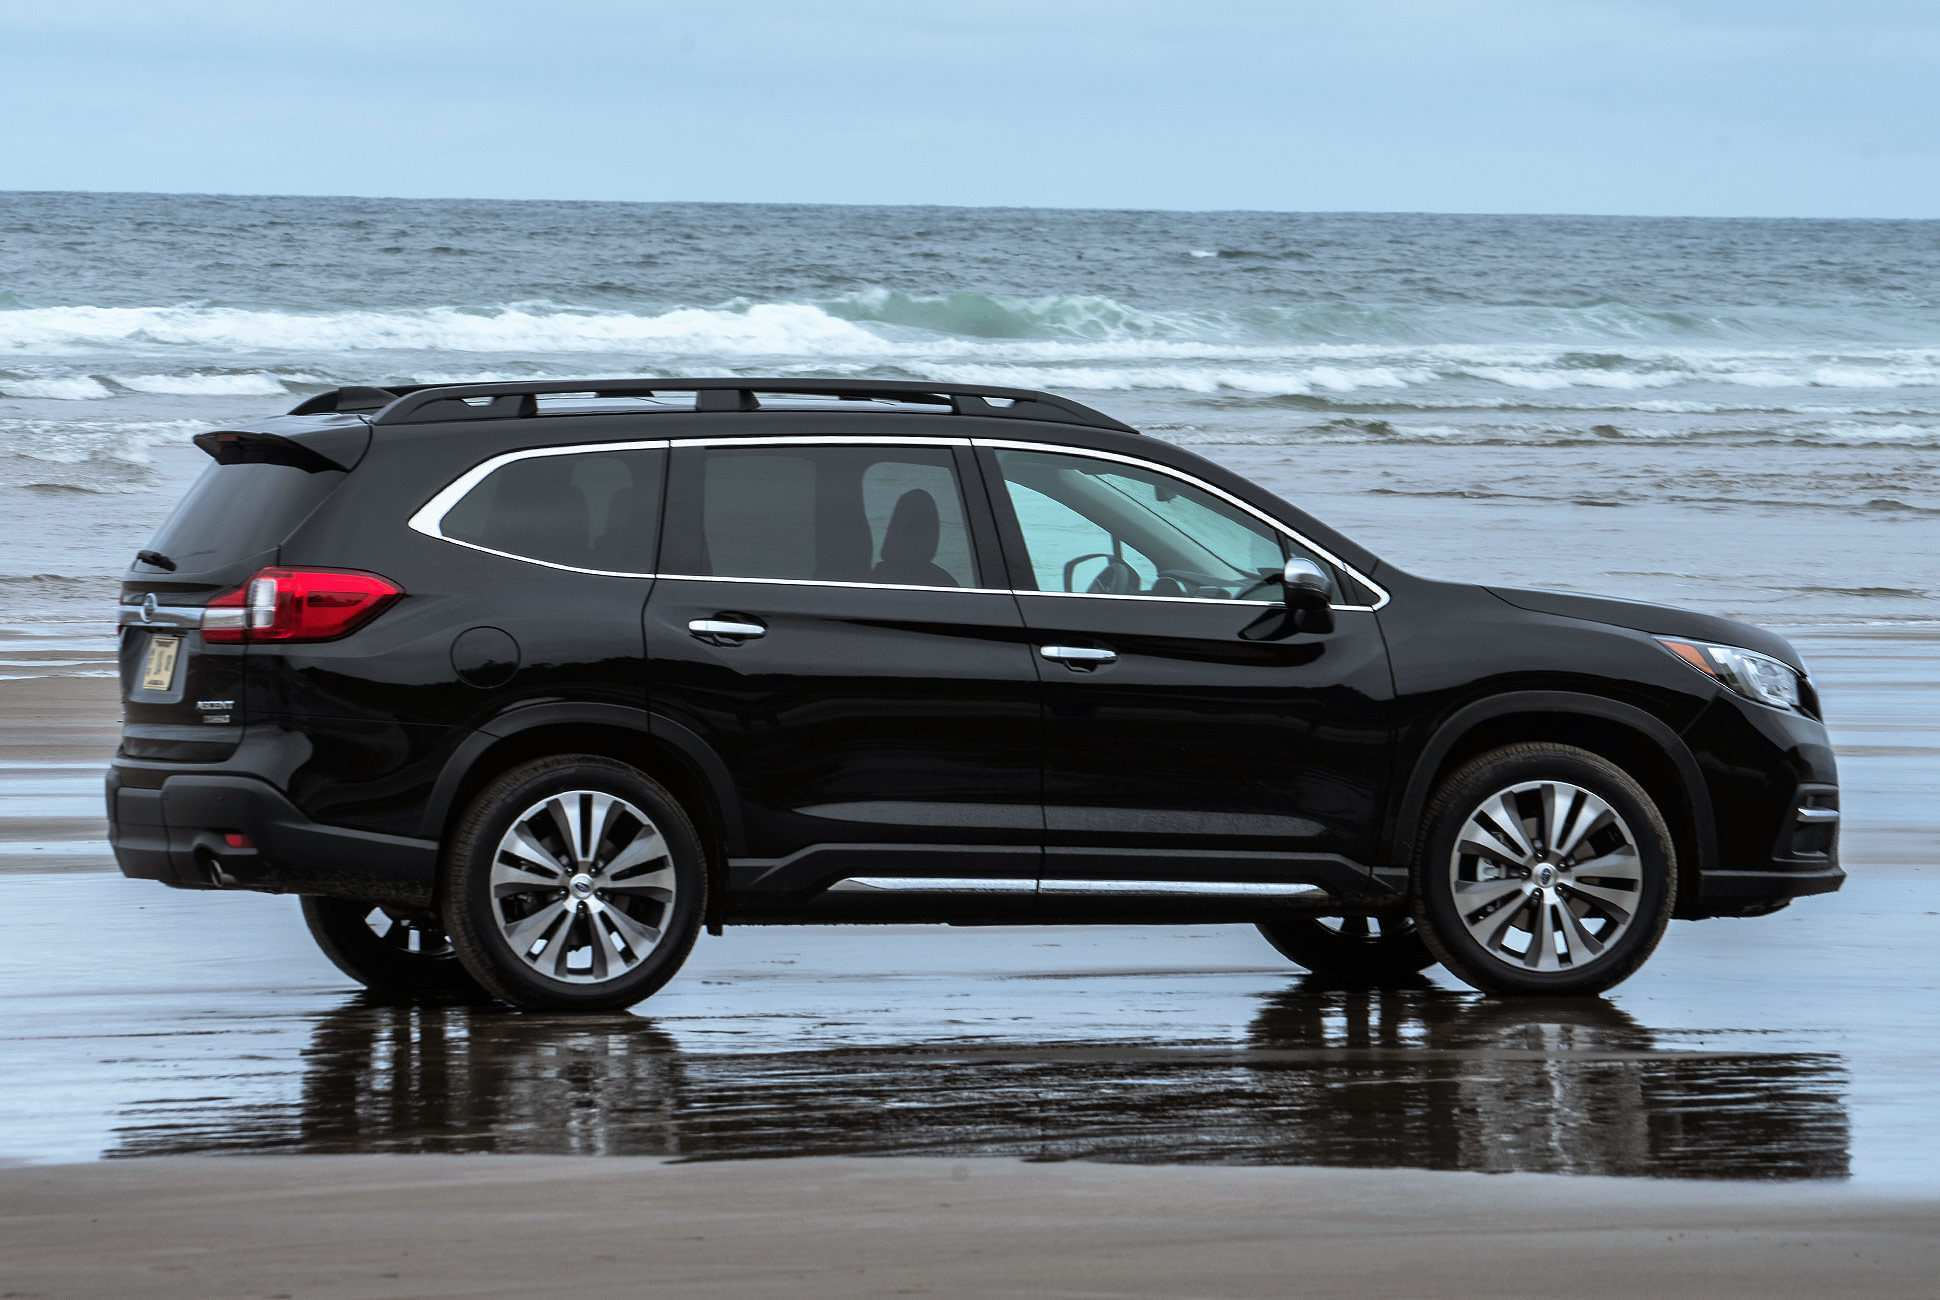 94 New 2019 Subaru Ascent Mpg Specs with 2019 Subaru Ascent Mpg